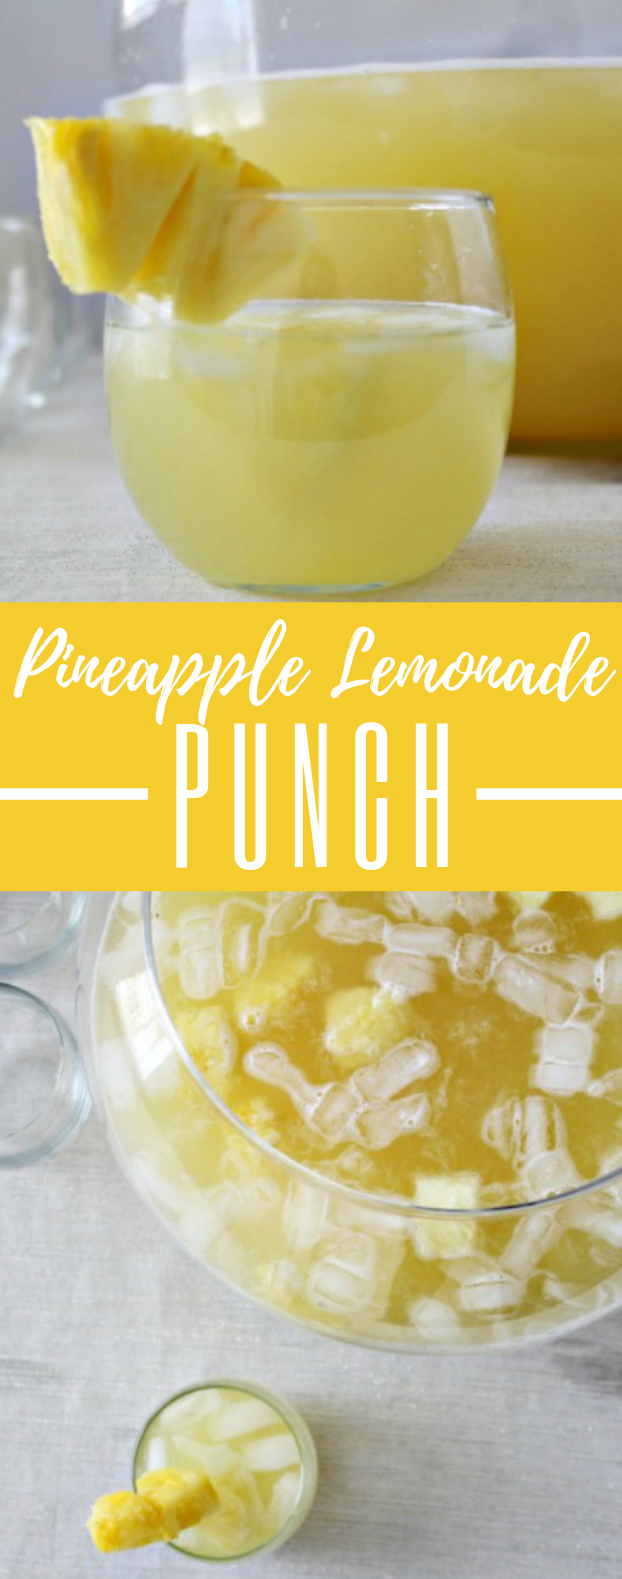 Pineapple Beverages #drinks #punch